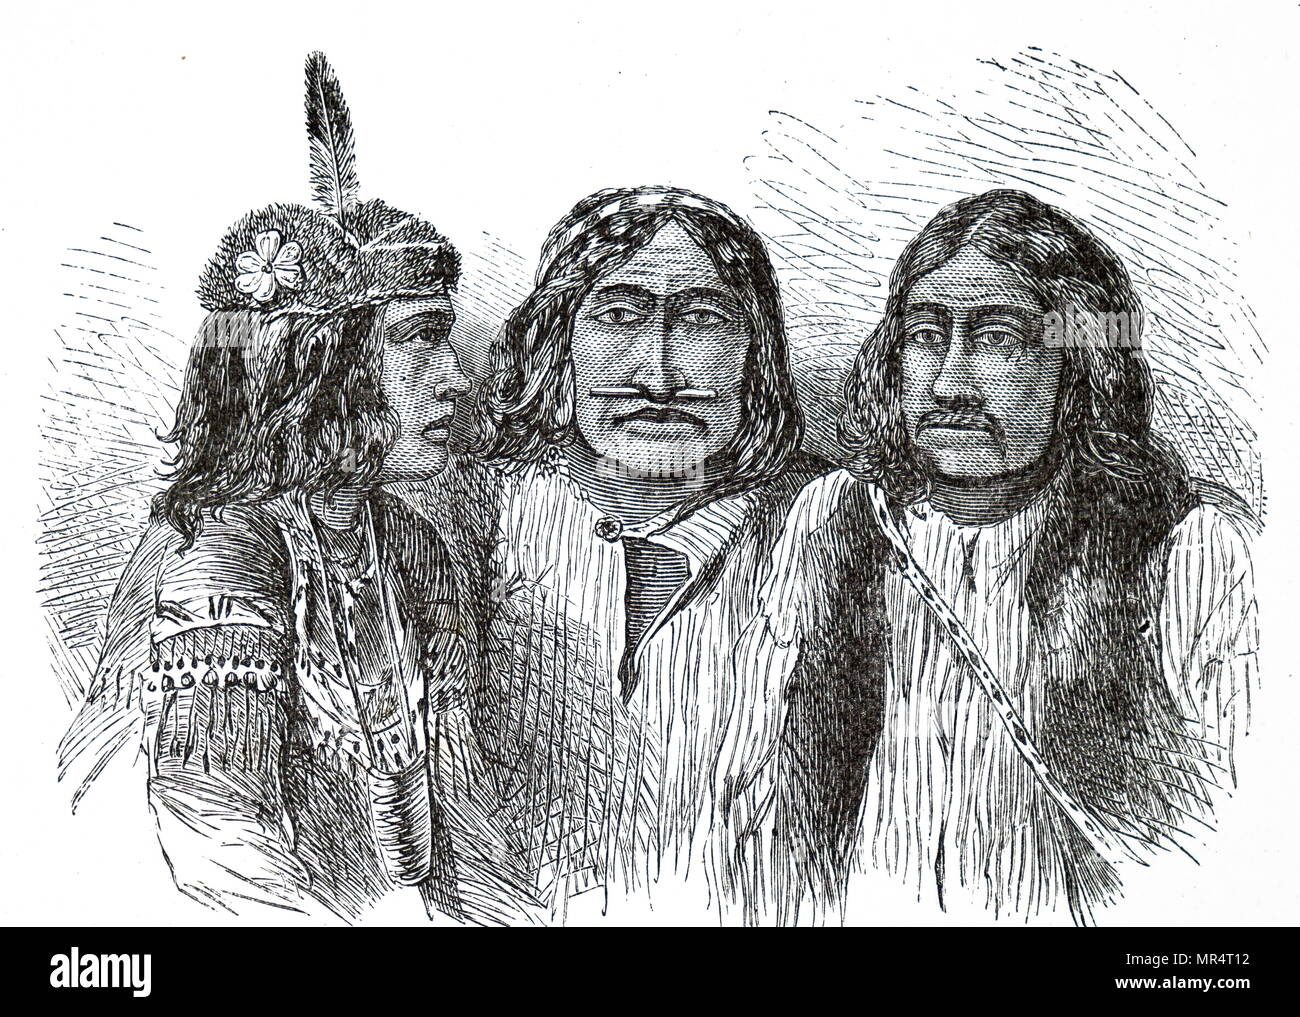 Athabaskan People Stock Photos & Athabaskan People Stock